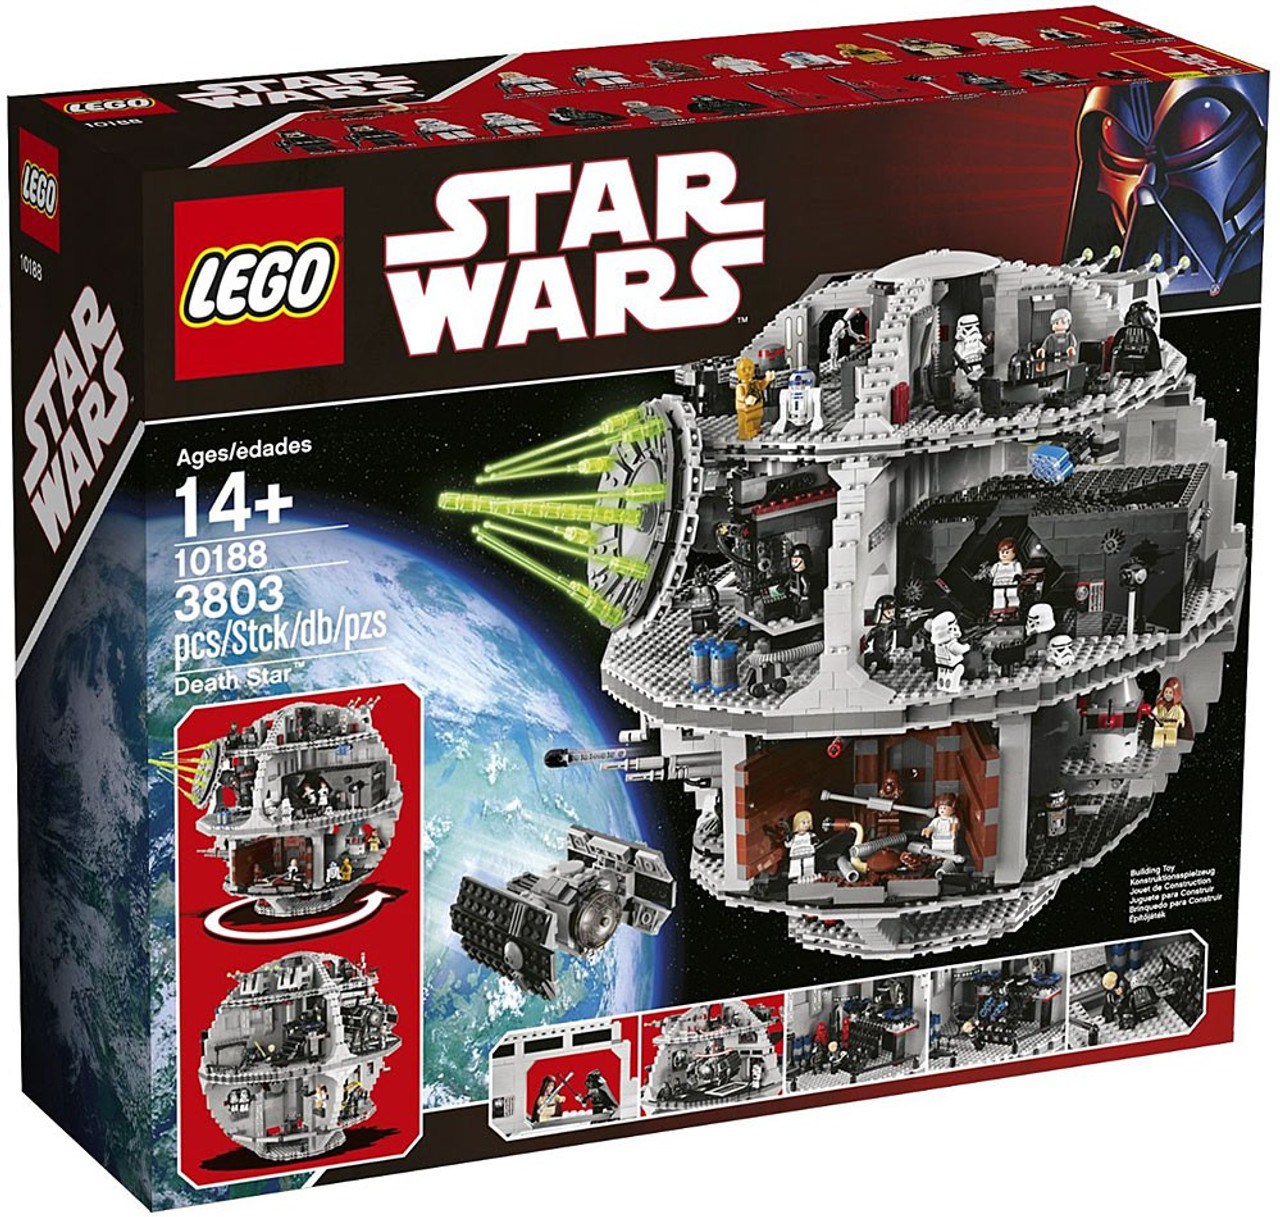 LEGO Star Wars Return of the Jedi Death Star Exclusive Set #10188